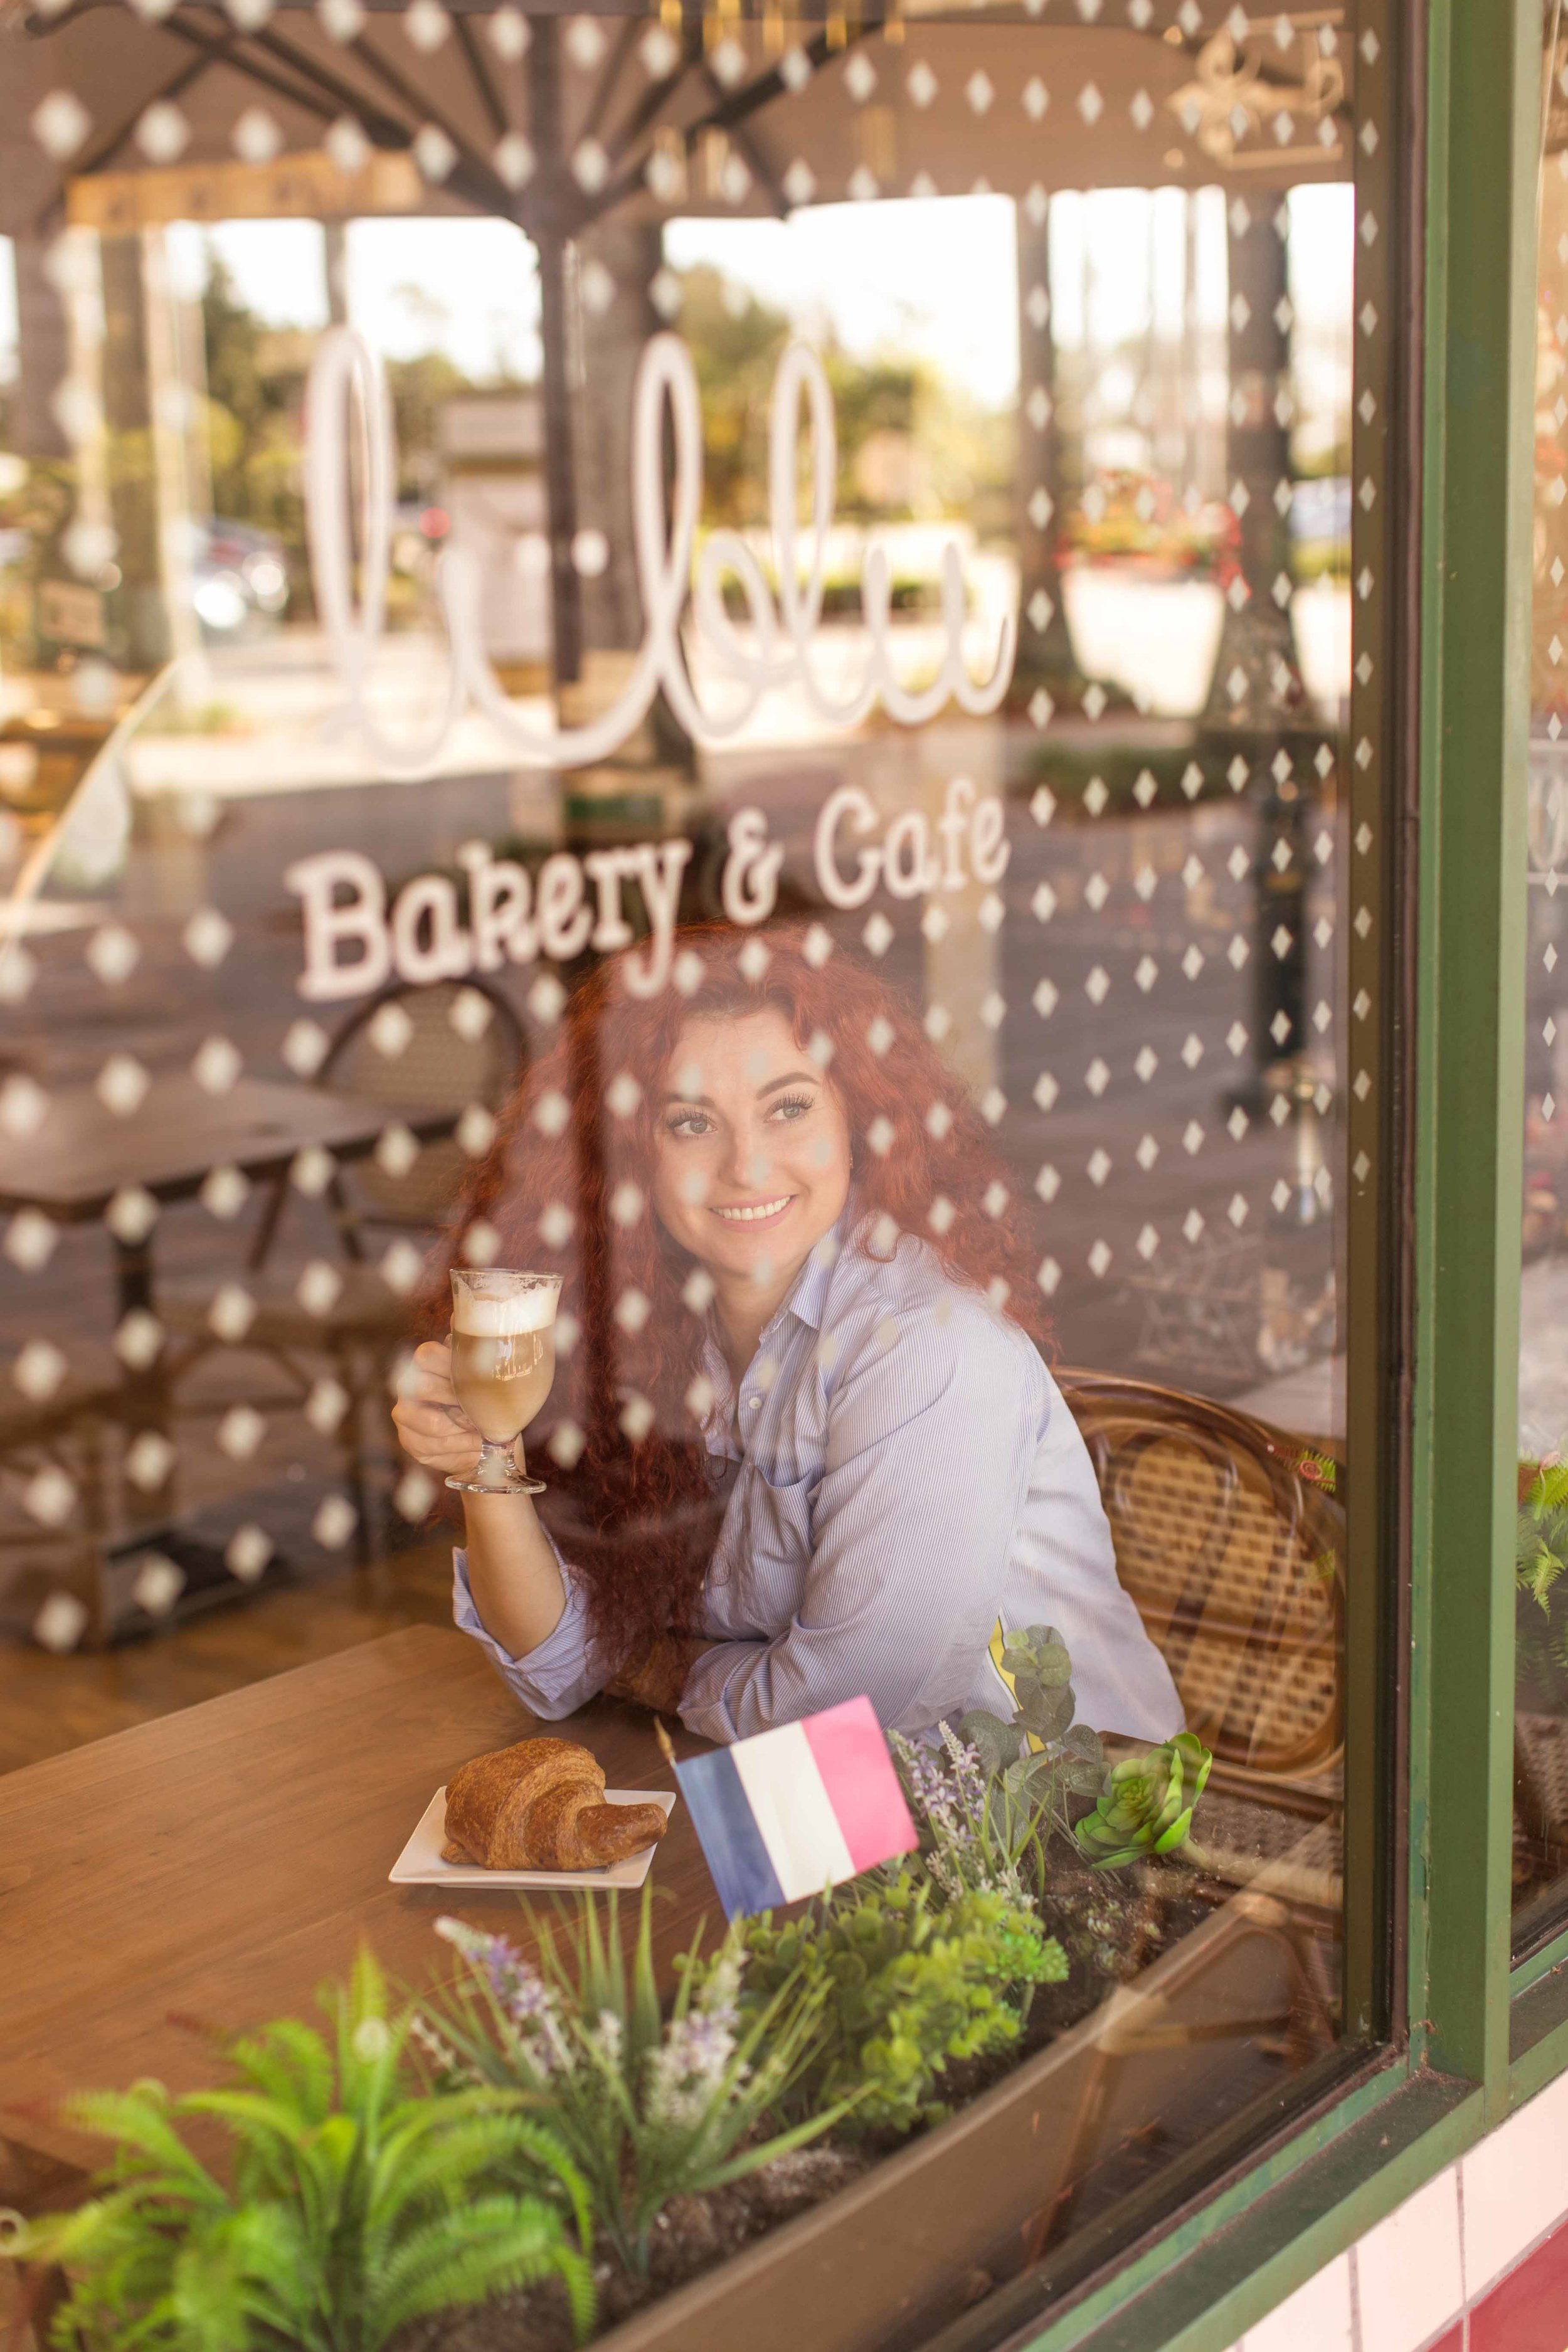 business-branding-photography-french-cafe-bakery-boca-raton-south-florida